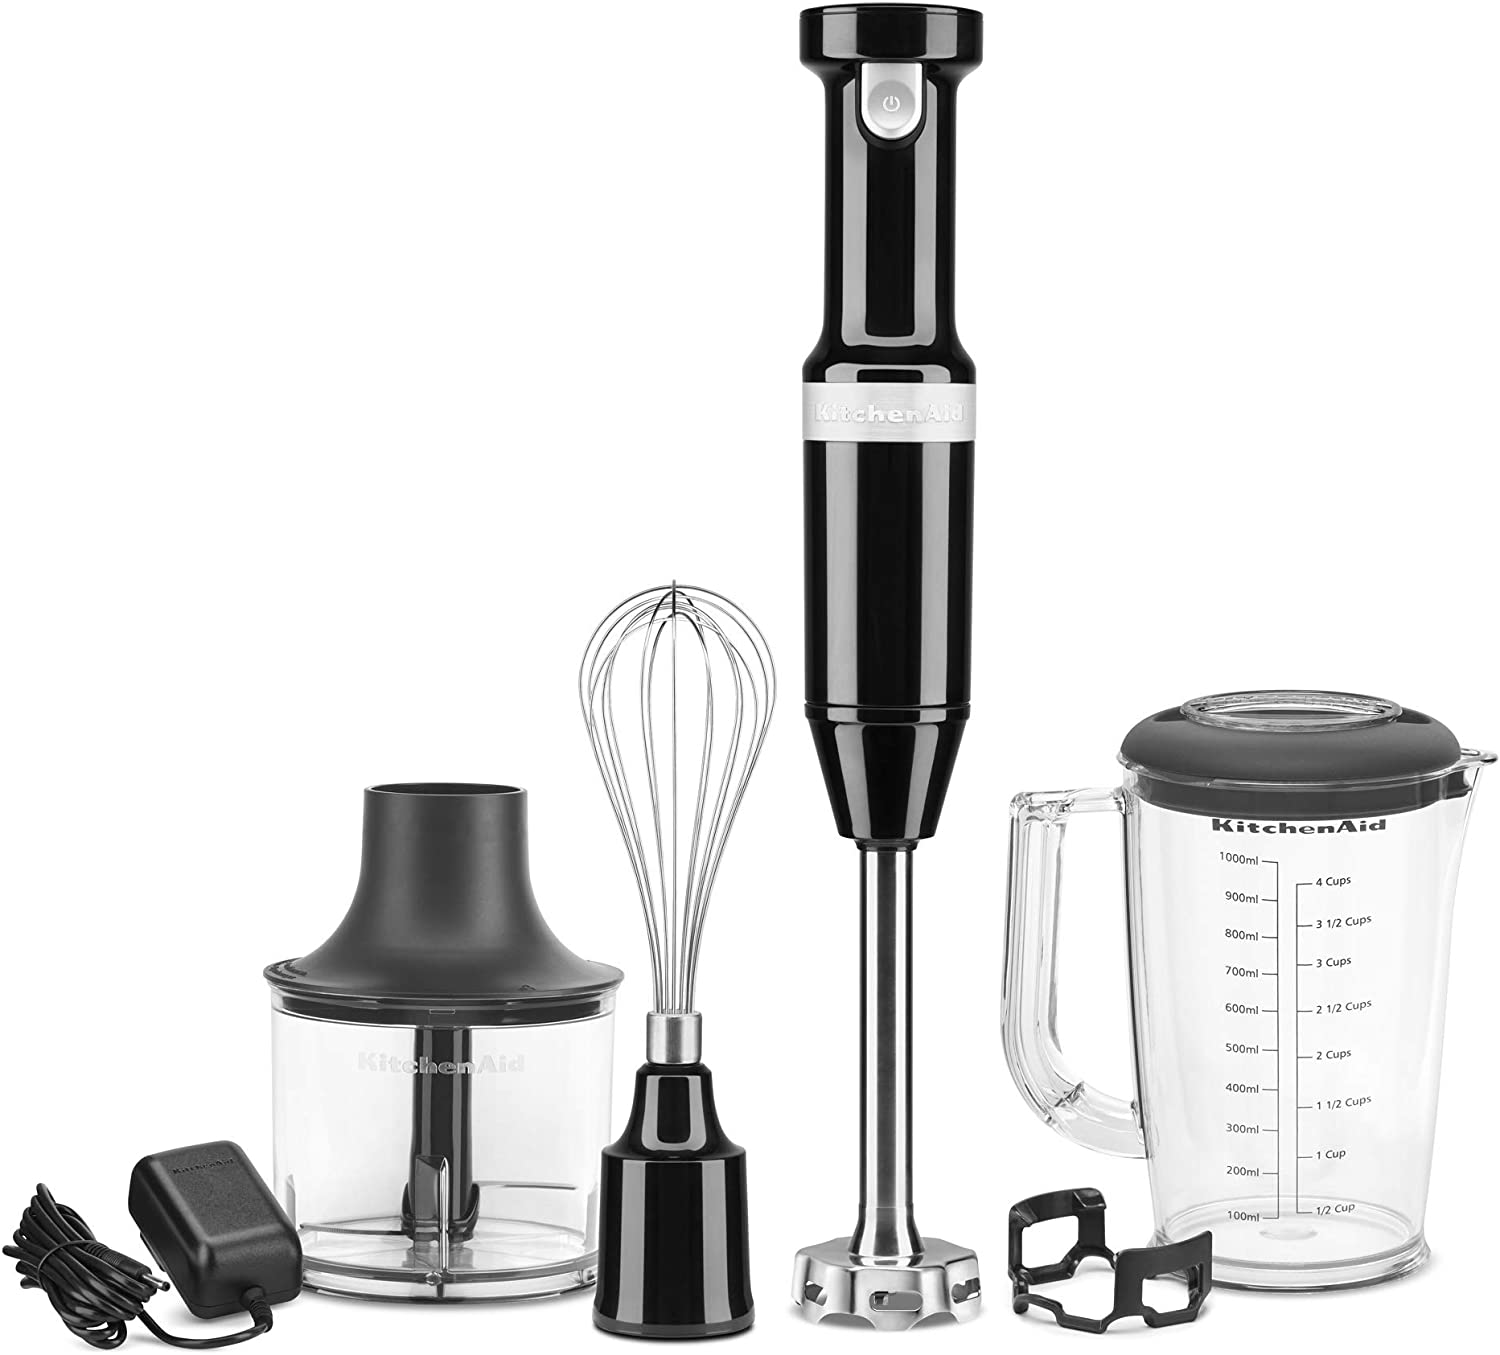 KitchenAid KHBBV83OB Cordless Variable Speed Hand Blender with Chopper and Whisk Attachment, Matte Onyx Black